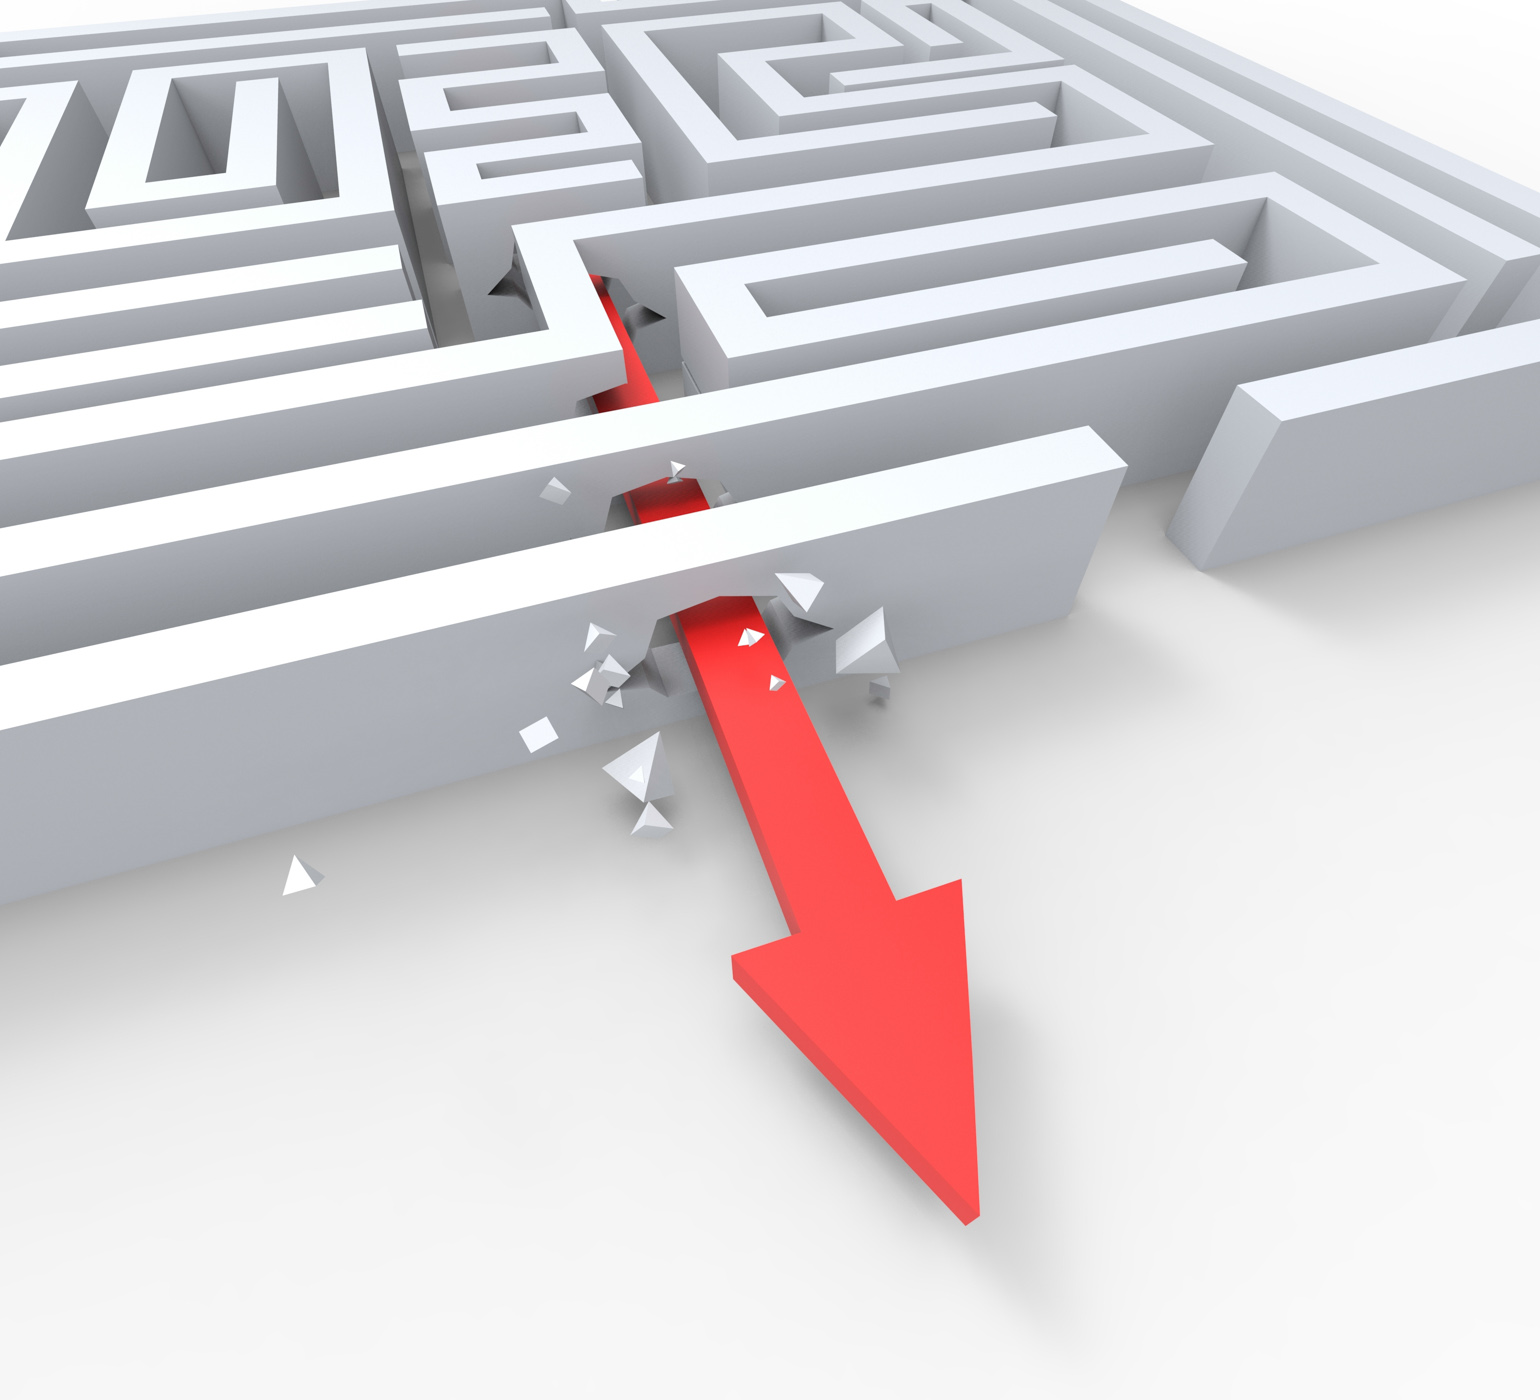 Break out of maze shows overcome puzzle exit photo